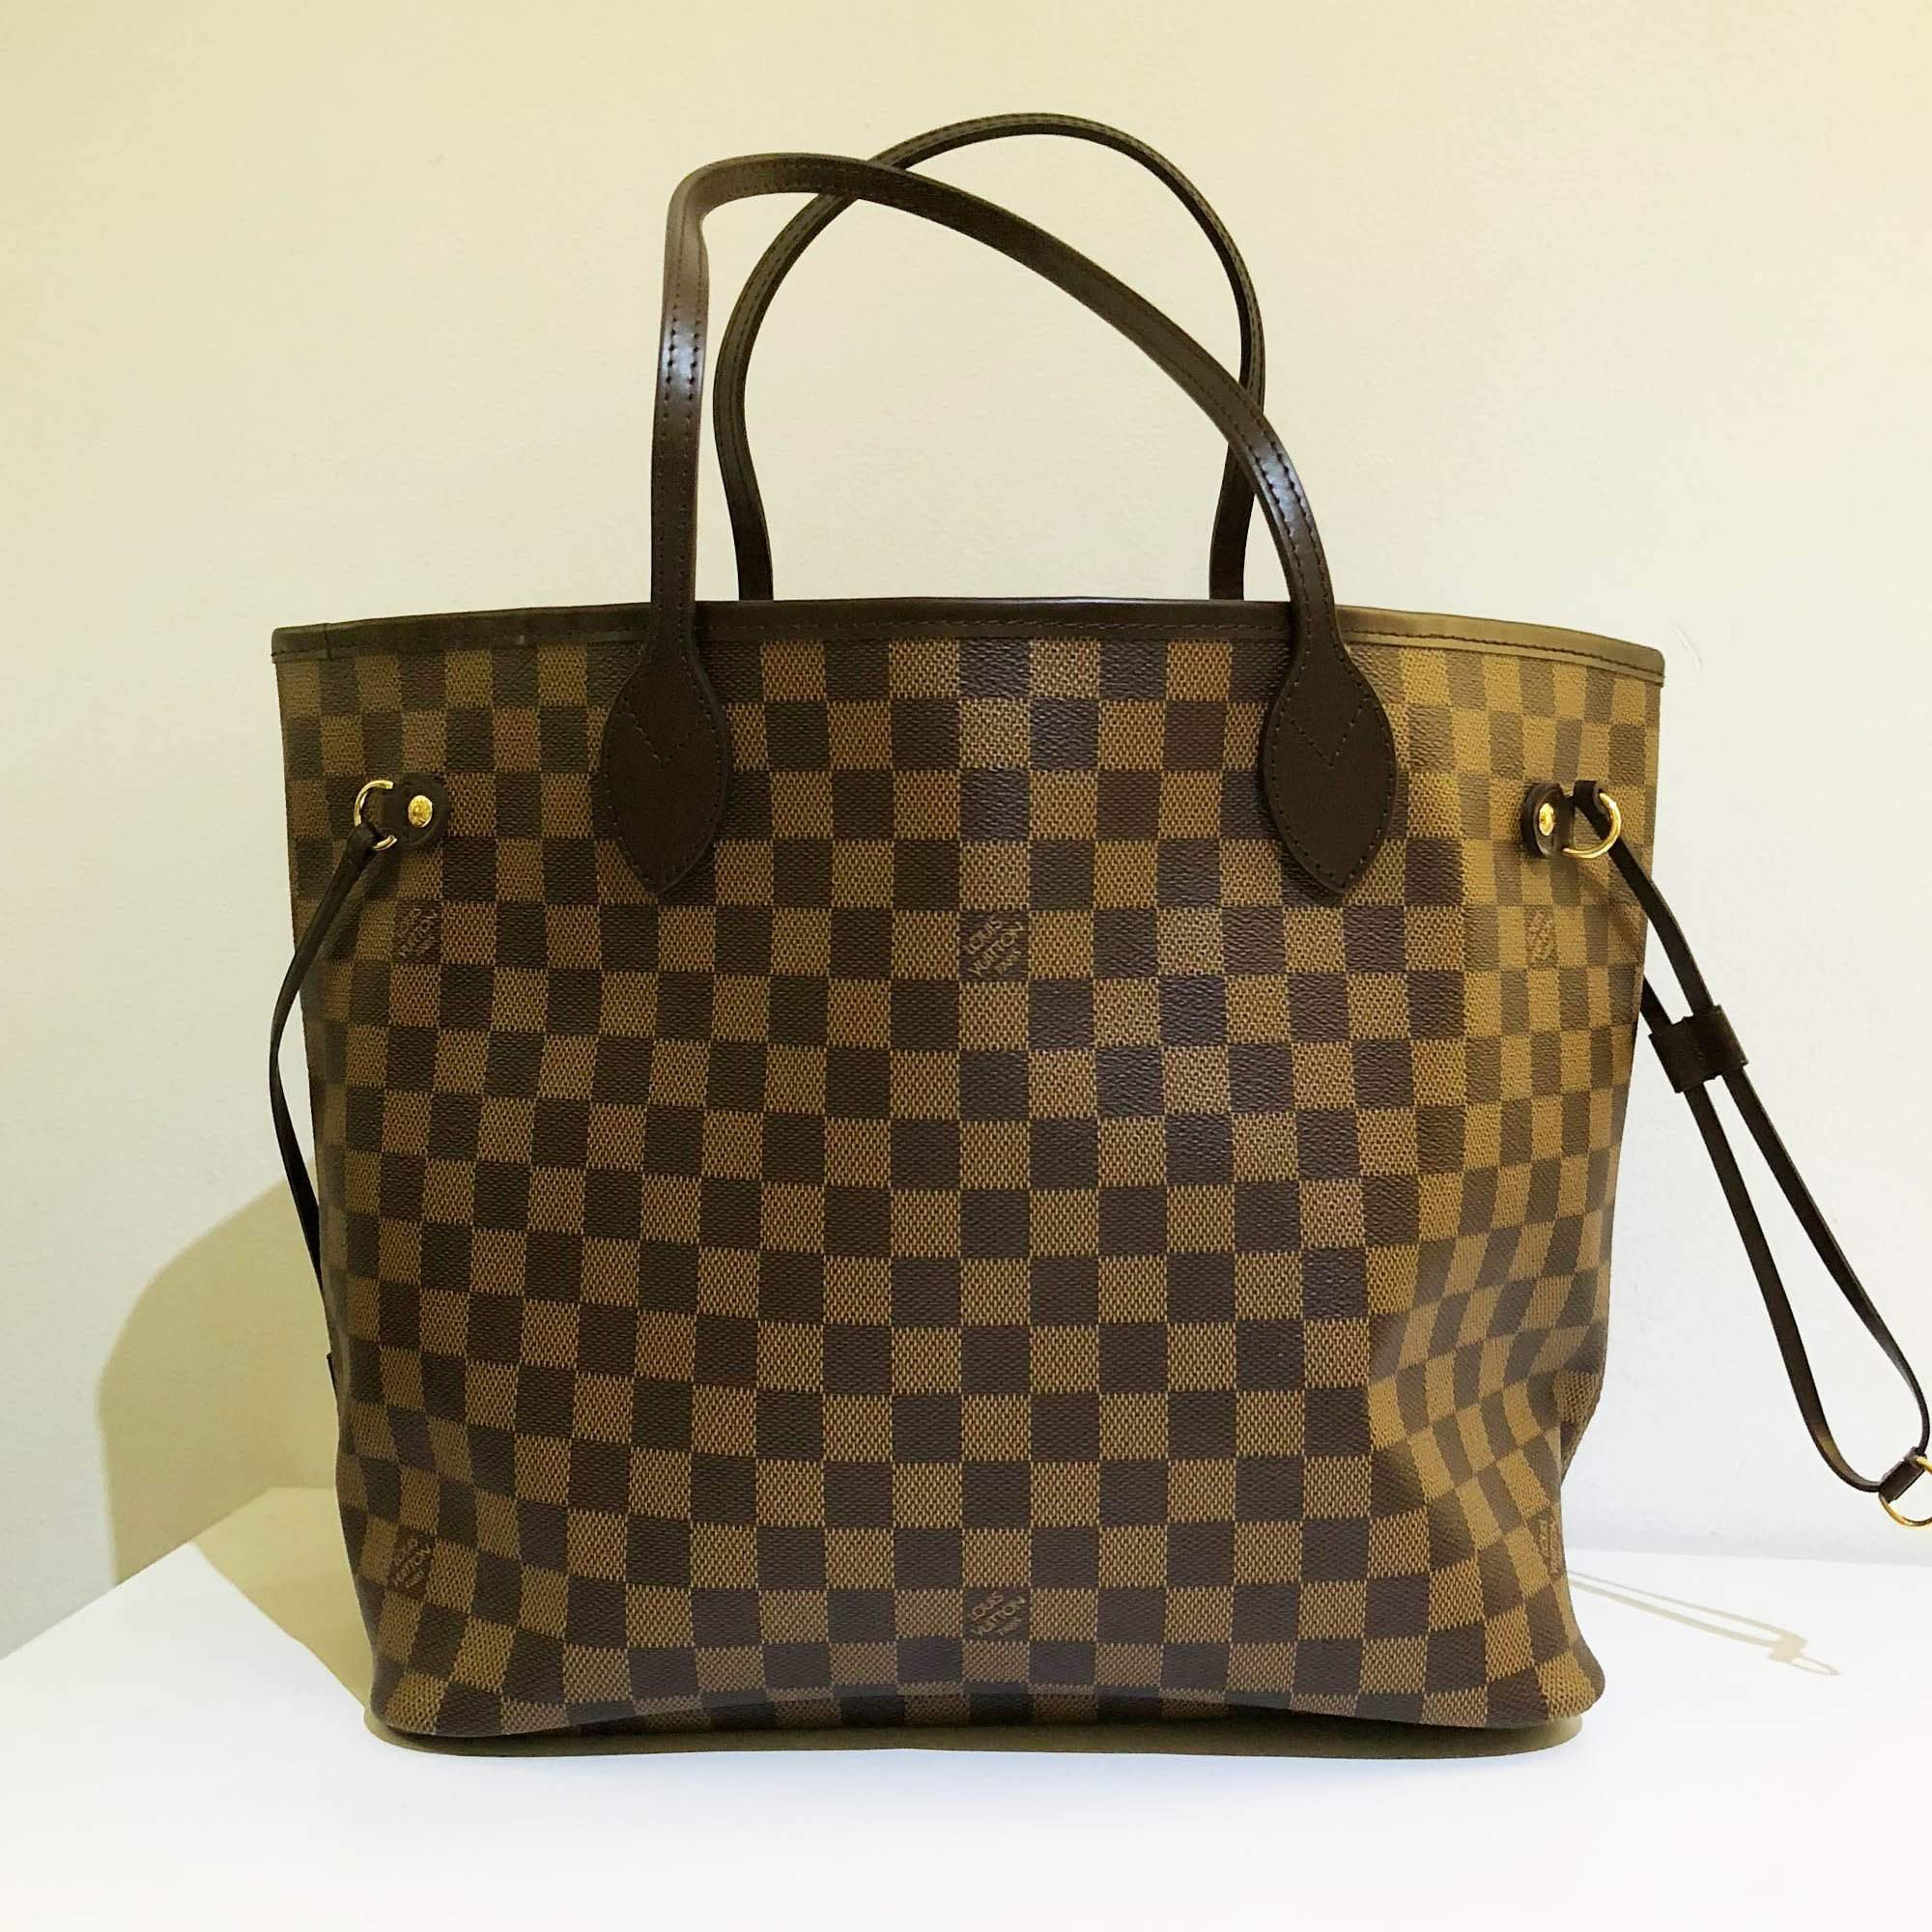 0100e72b8aa Louis Vuitton Damier Ebene Canvas Neverfull MM Bag – Garderobe